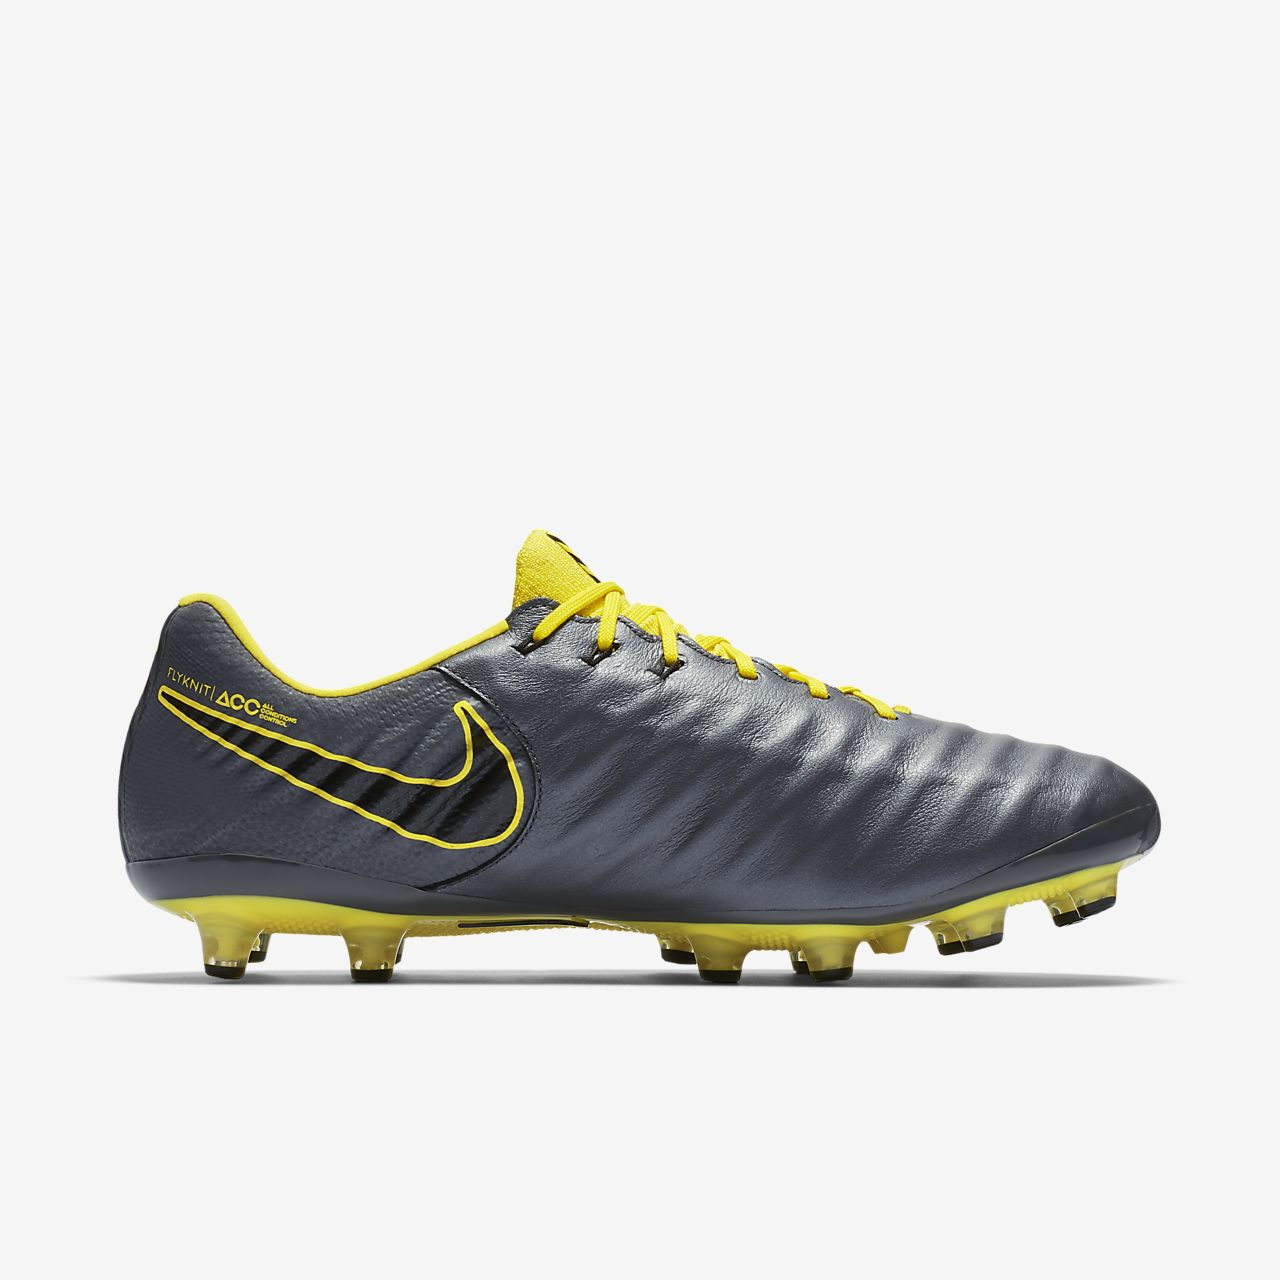 87886e48f Nike Legend VII Elite AG-PRO Artificial-Grass Football Boot. Nike.com GB